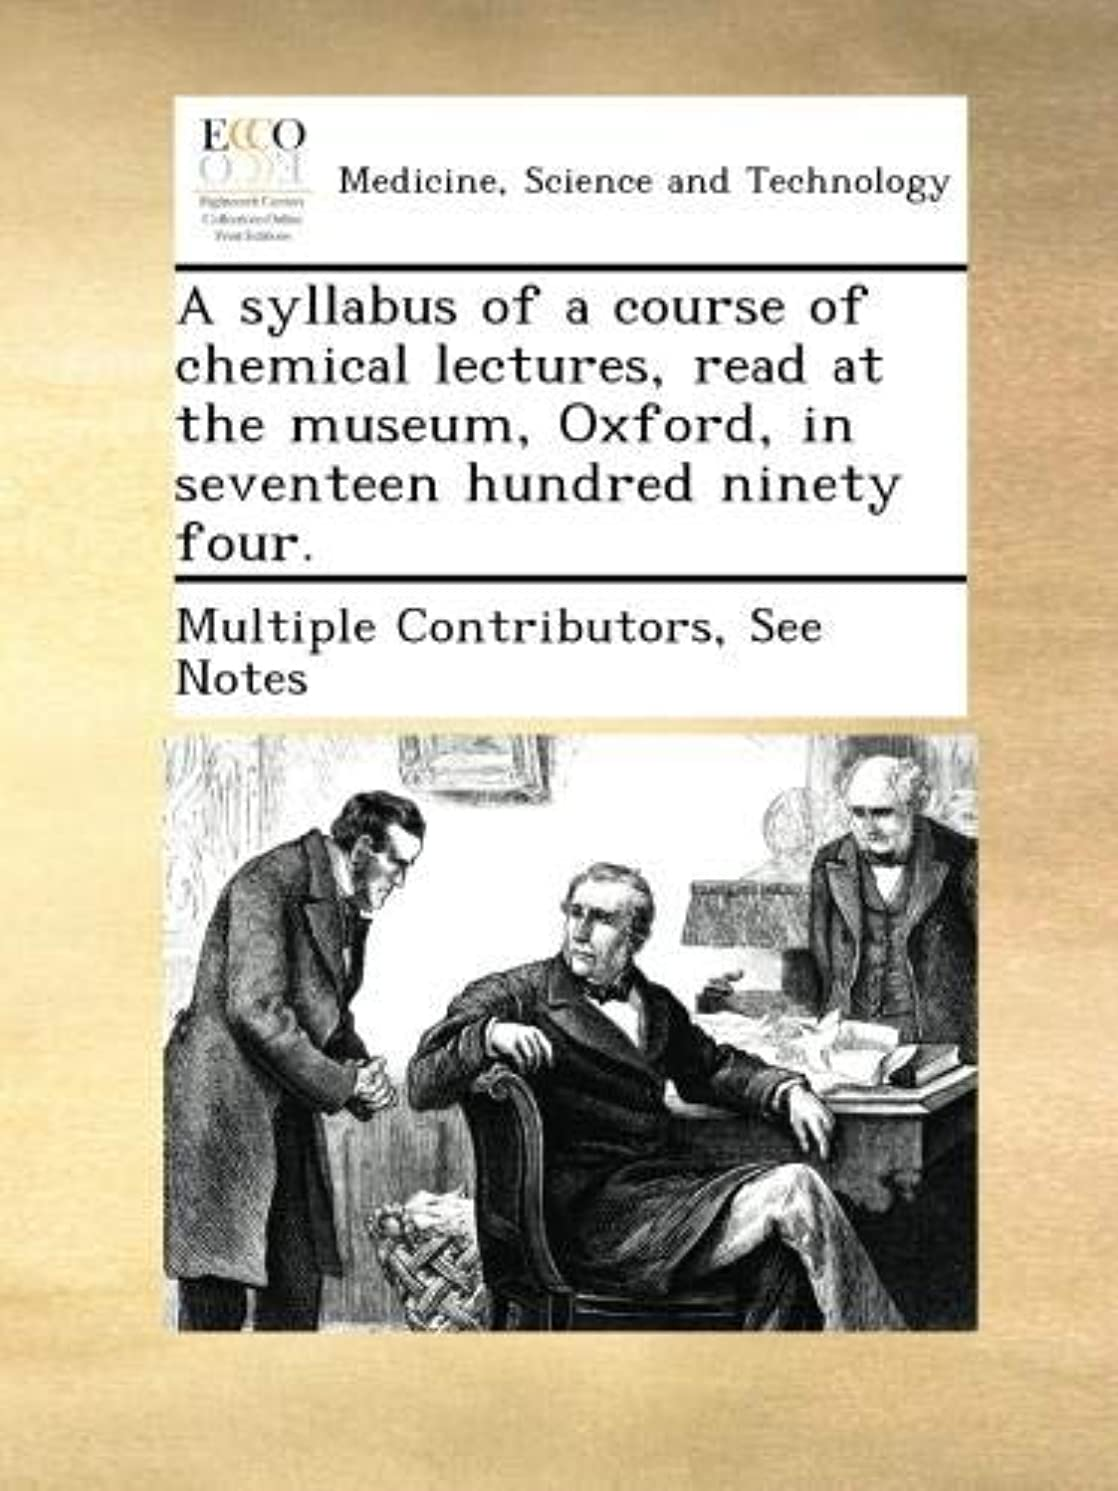 つぶやき消費ファイナンスA syllabus of a course of chemical lectures, read at the museum, Oxford, in seventeen hundred ninety four.